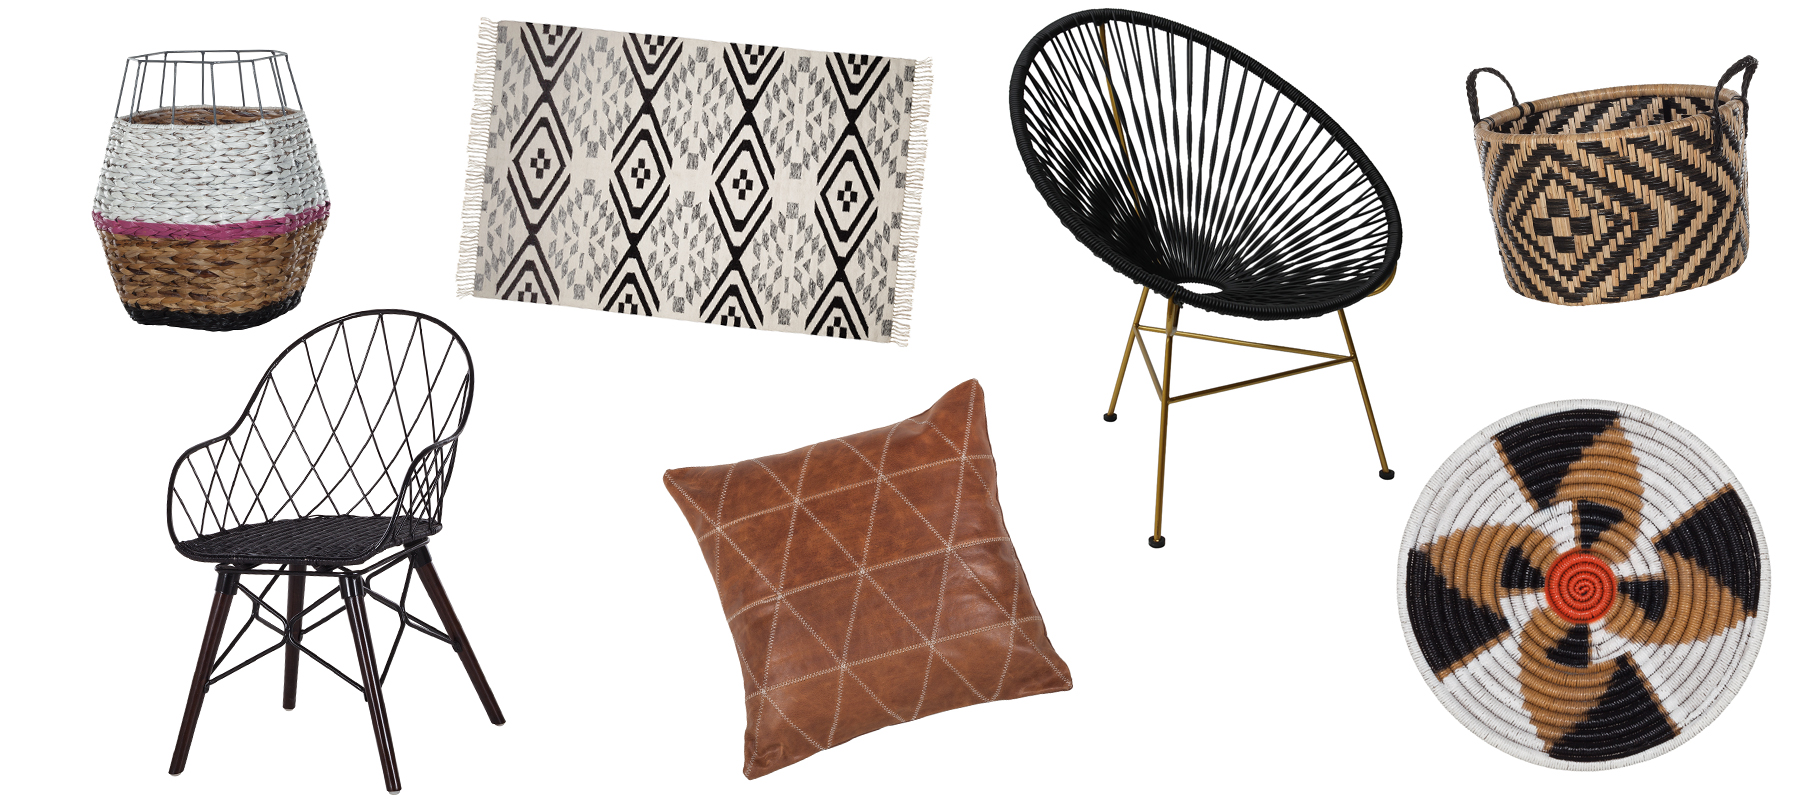 eva padberg home24 c'est nous interior blog styling home&living marrakesh cozy cocooning bold colours life lifestyle lifestyleblog interior blog model beauty summer mood moodboard leather accessories pouf knit pattern cats & dogs blog ricarda schernus 1